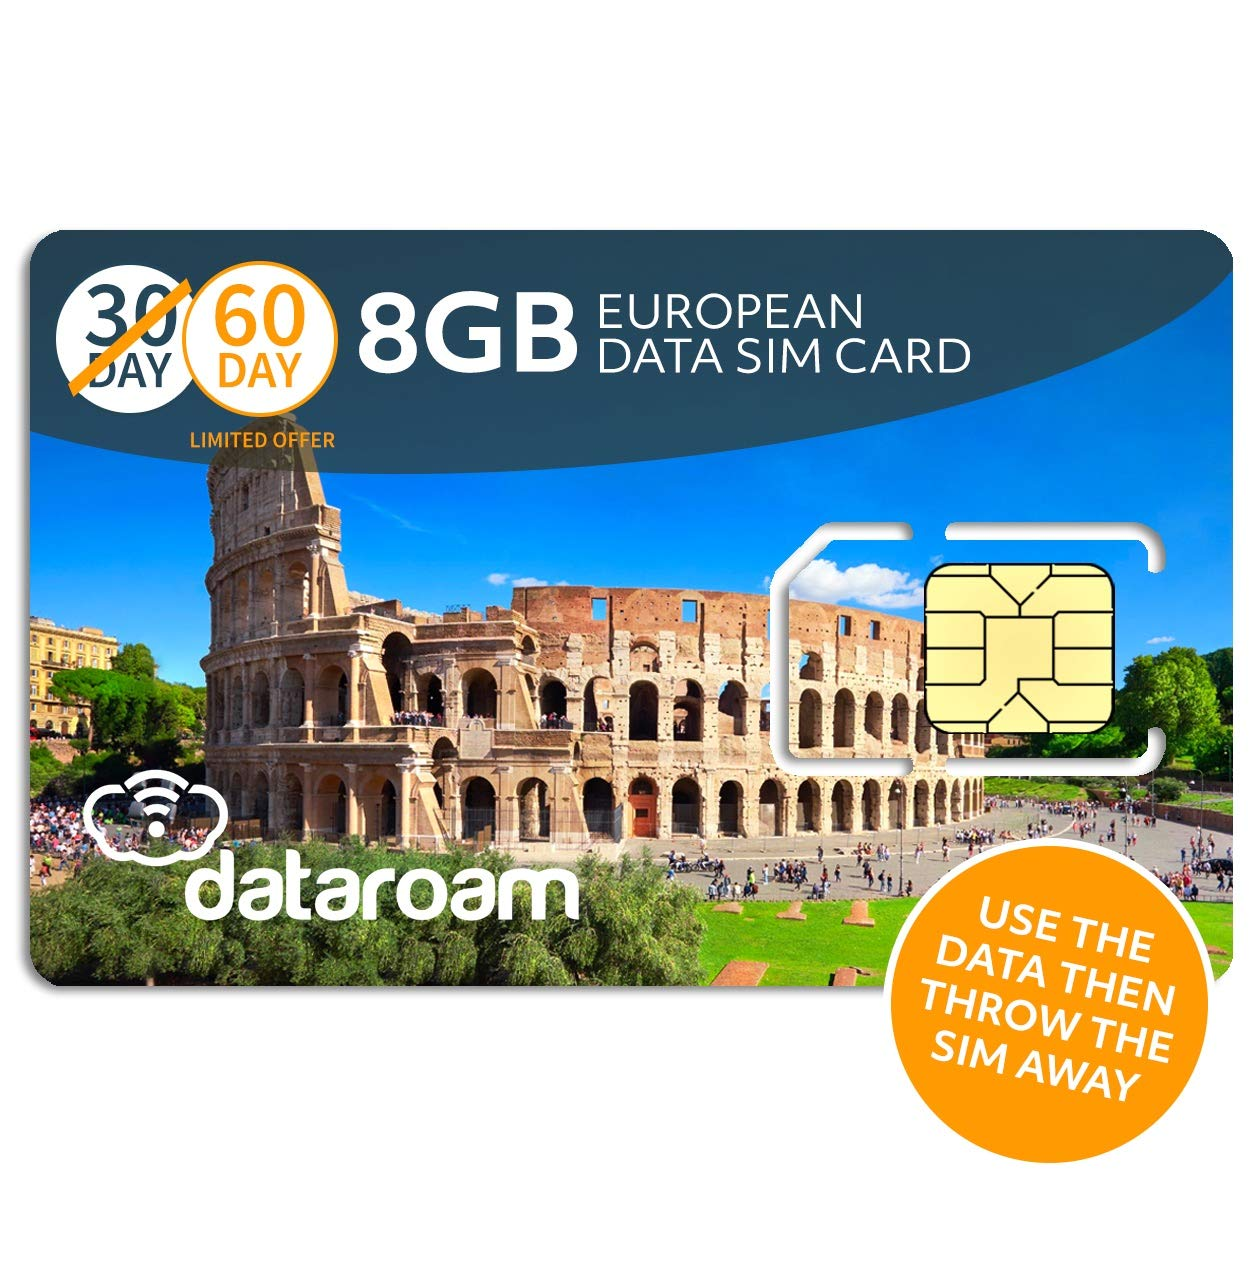 dataroam Prepaid 4G Europe Data SIM Card - Europe 8GB Bundle - 36 Countries - 3-in-1 SIM - Cellhire by Cellhire